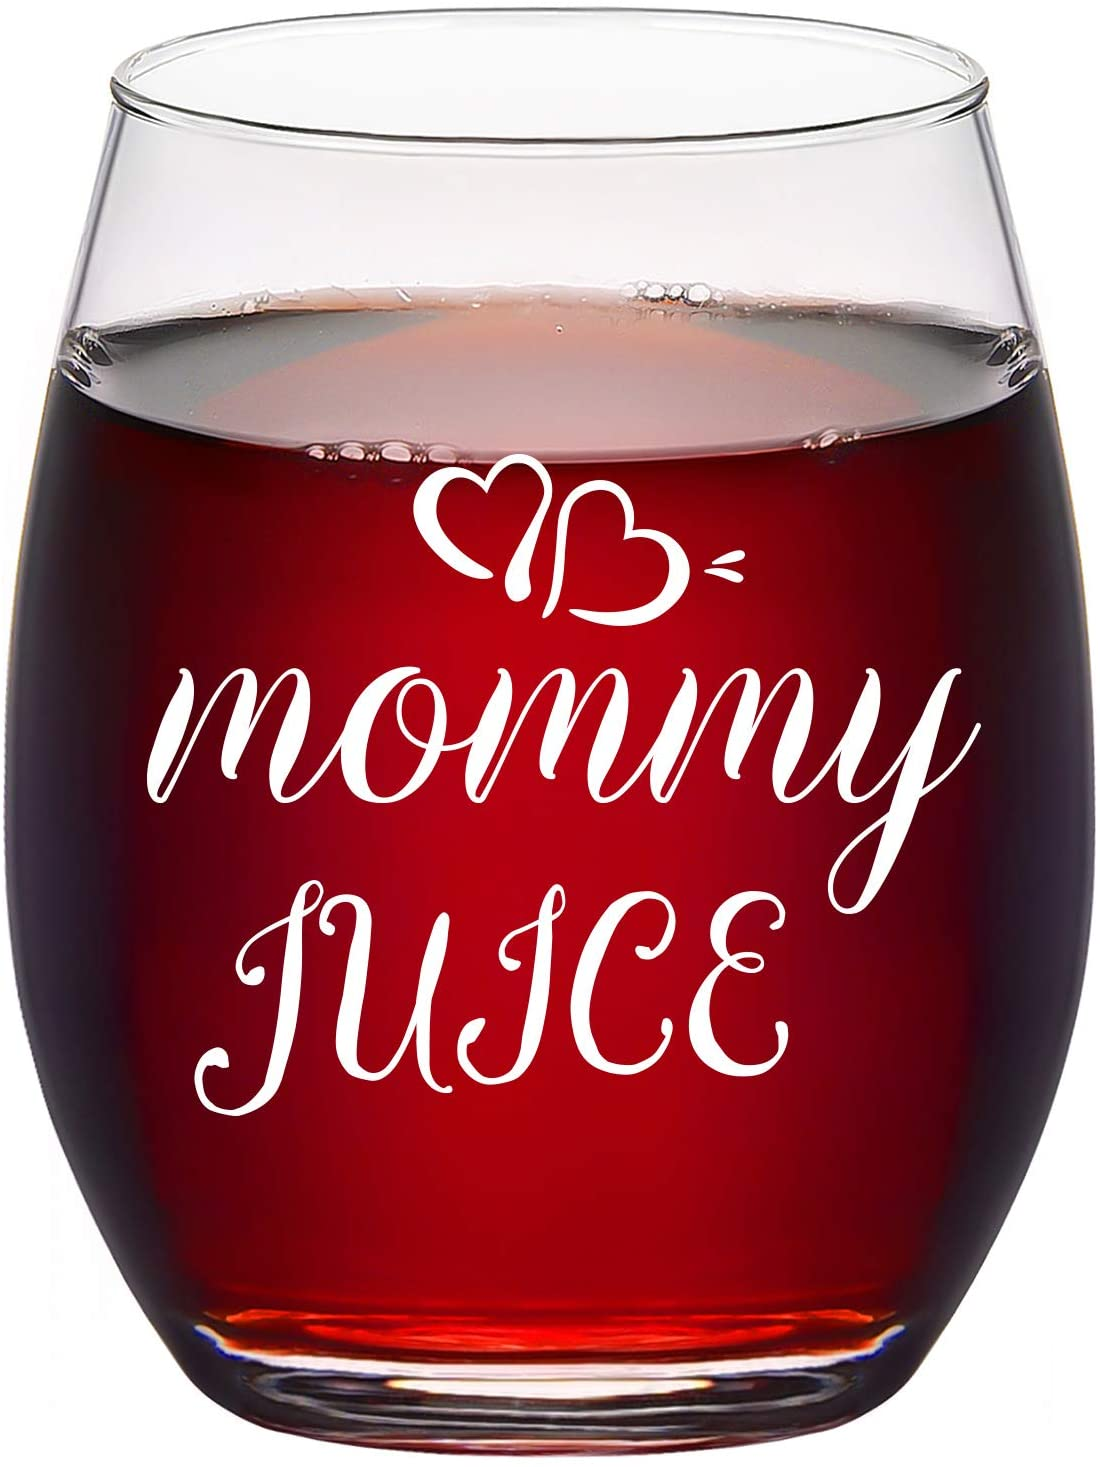 Mommy Juice Stemless Wine Glass 15Oz - Best Gift for Christmas Day, Birthday, Mothers Day, Thanksgiving, White Elephant - Funny Gift for Mom, New Mom, Wife, Women from Daughter, Son, Kids, Husband